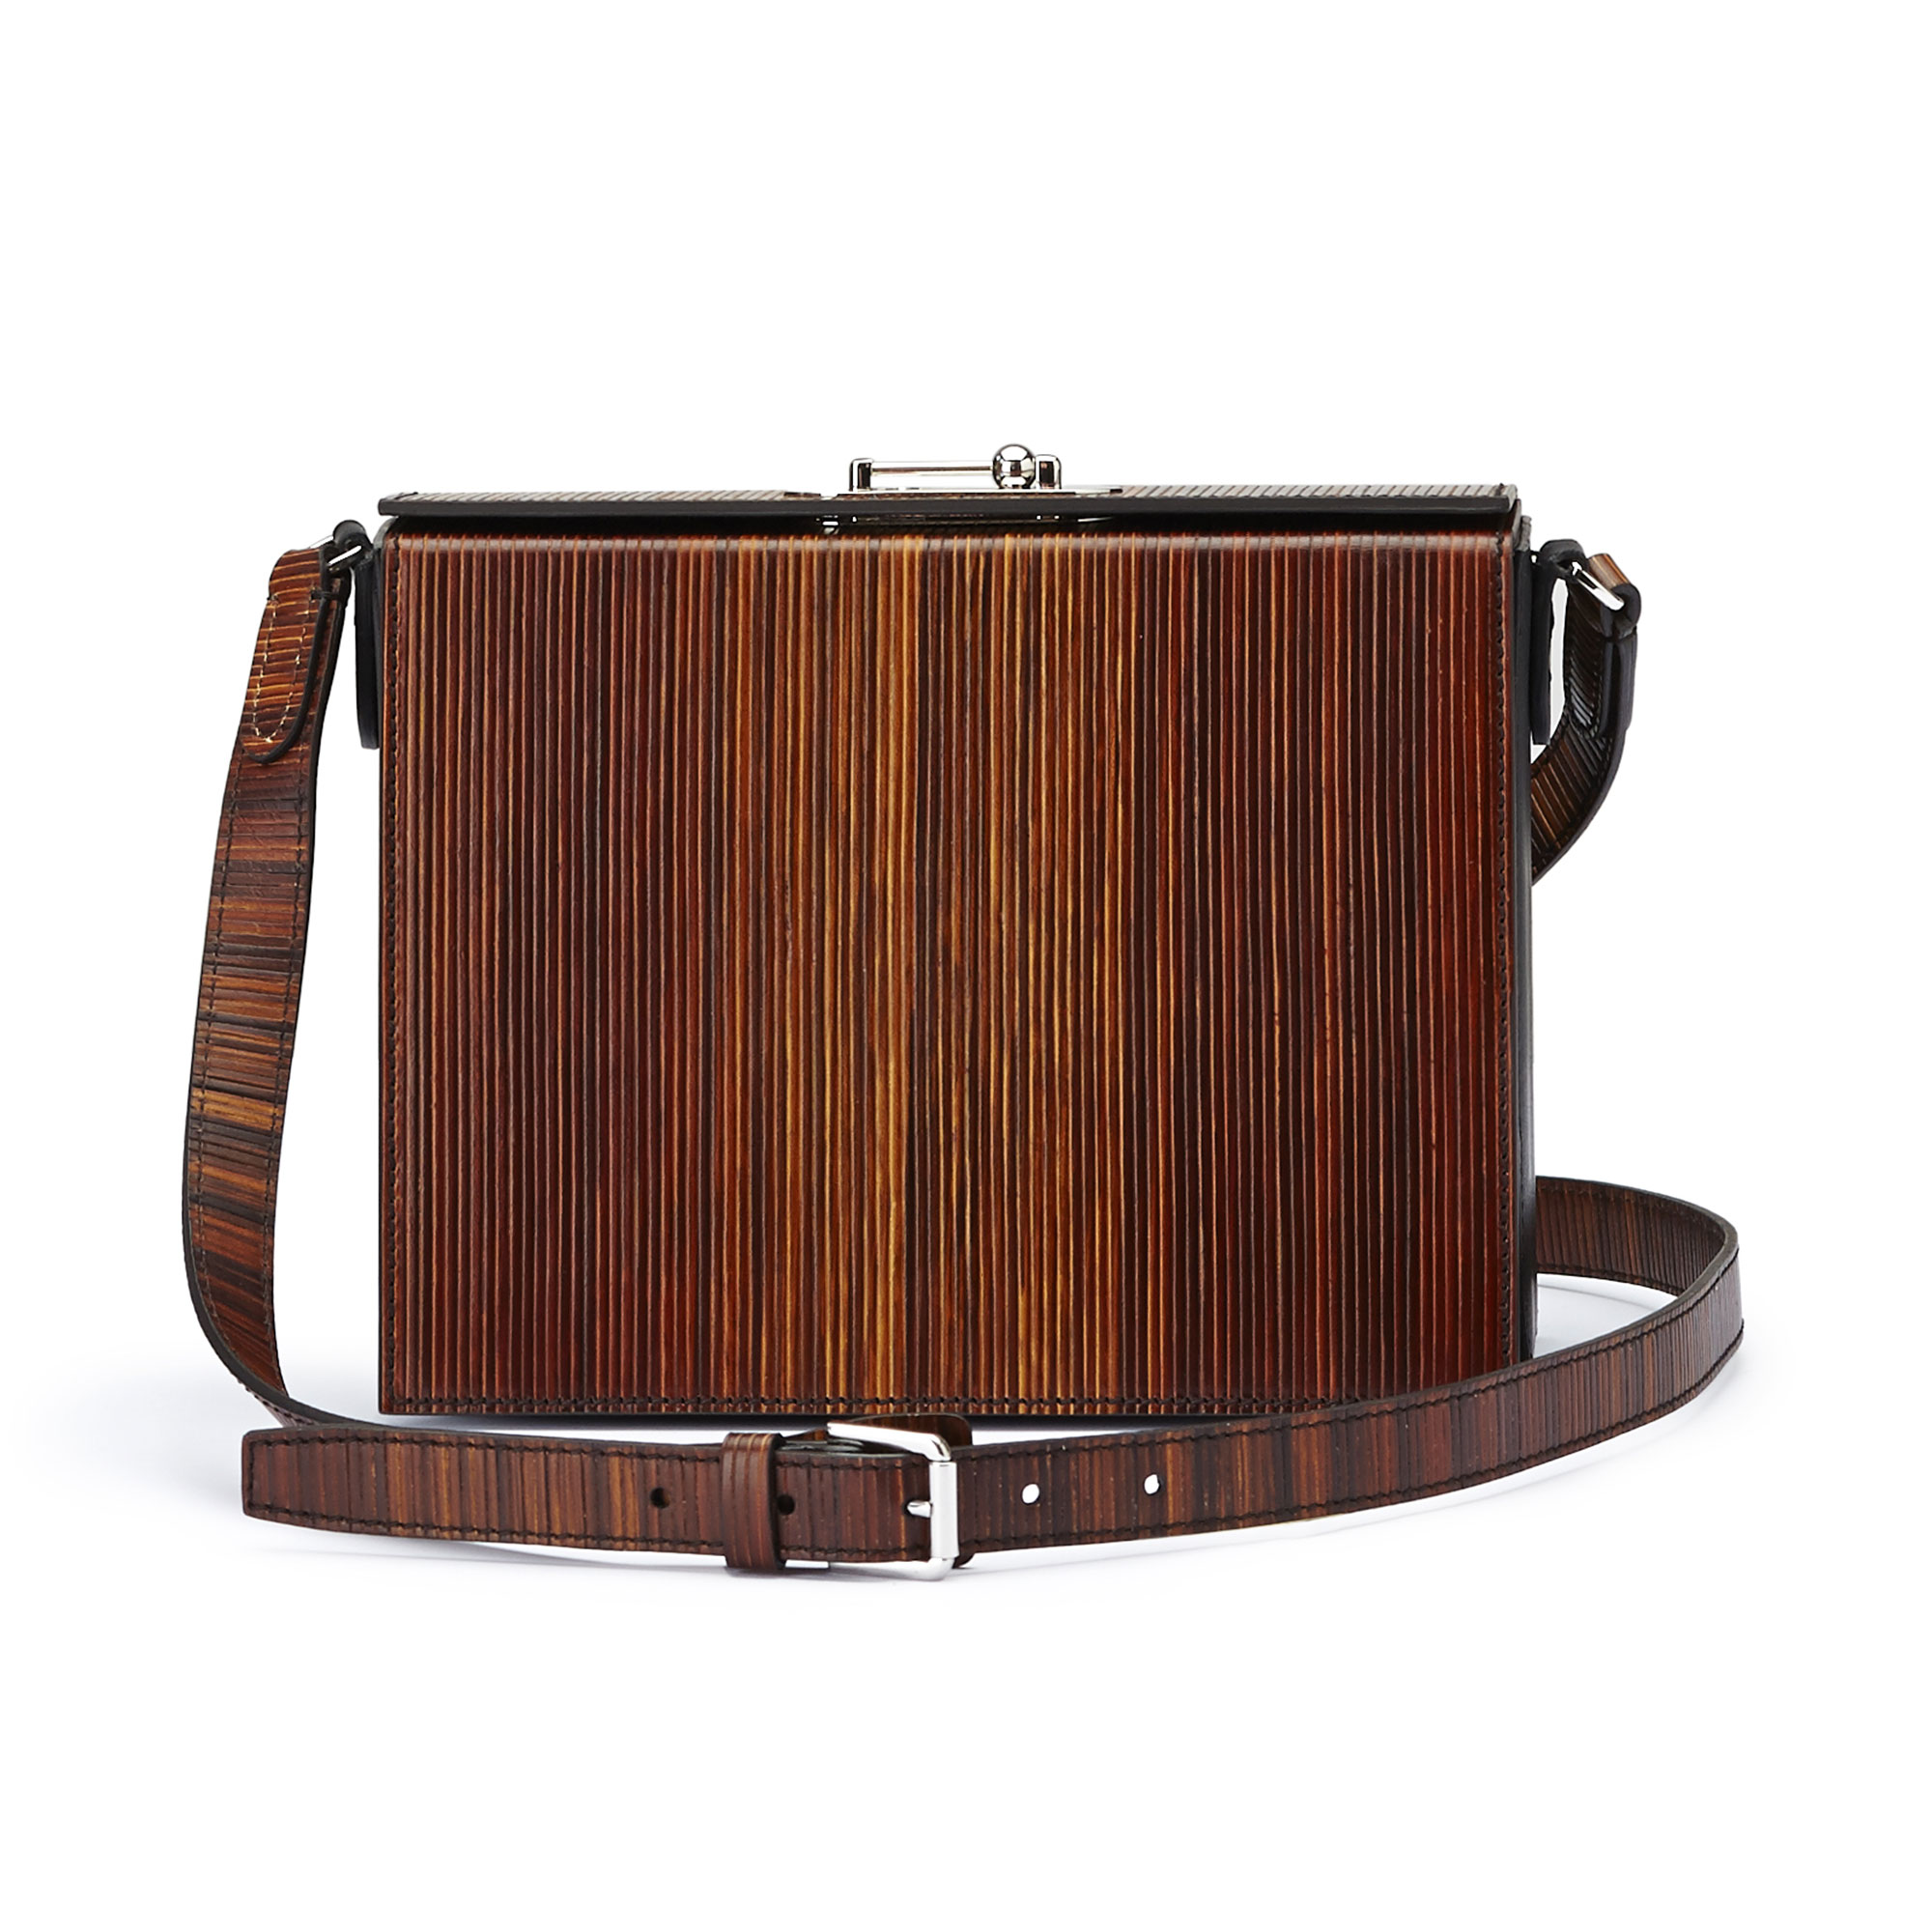 The black effect wood leather french calf Gemma Crossbody bag by Bertoni 1949 01